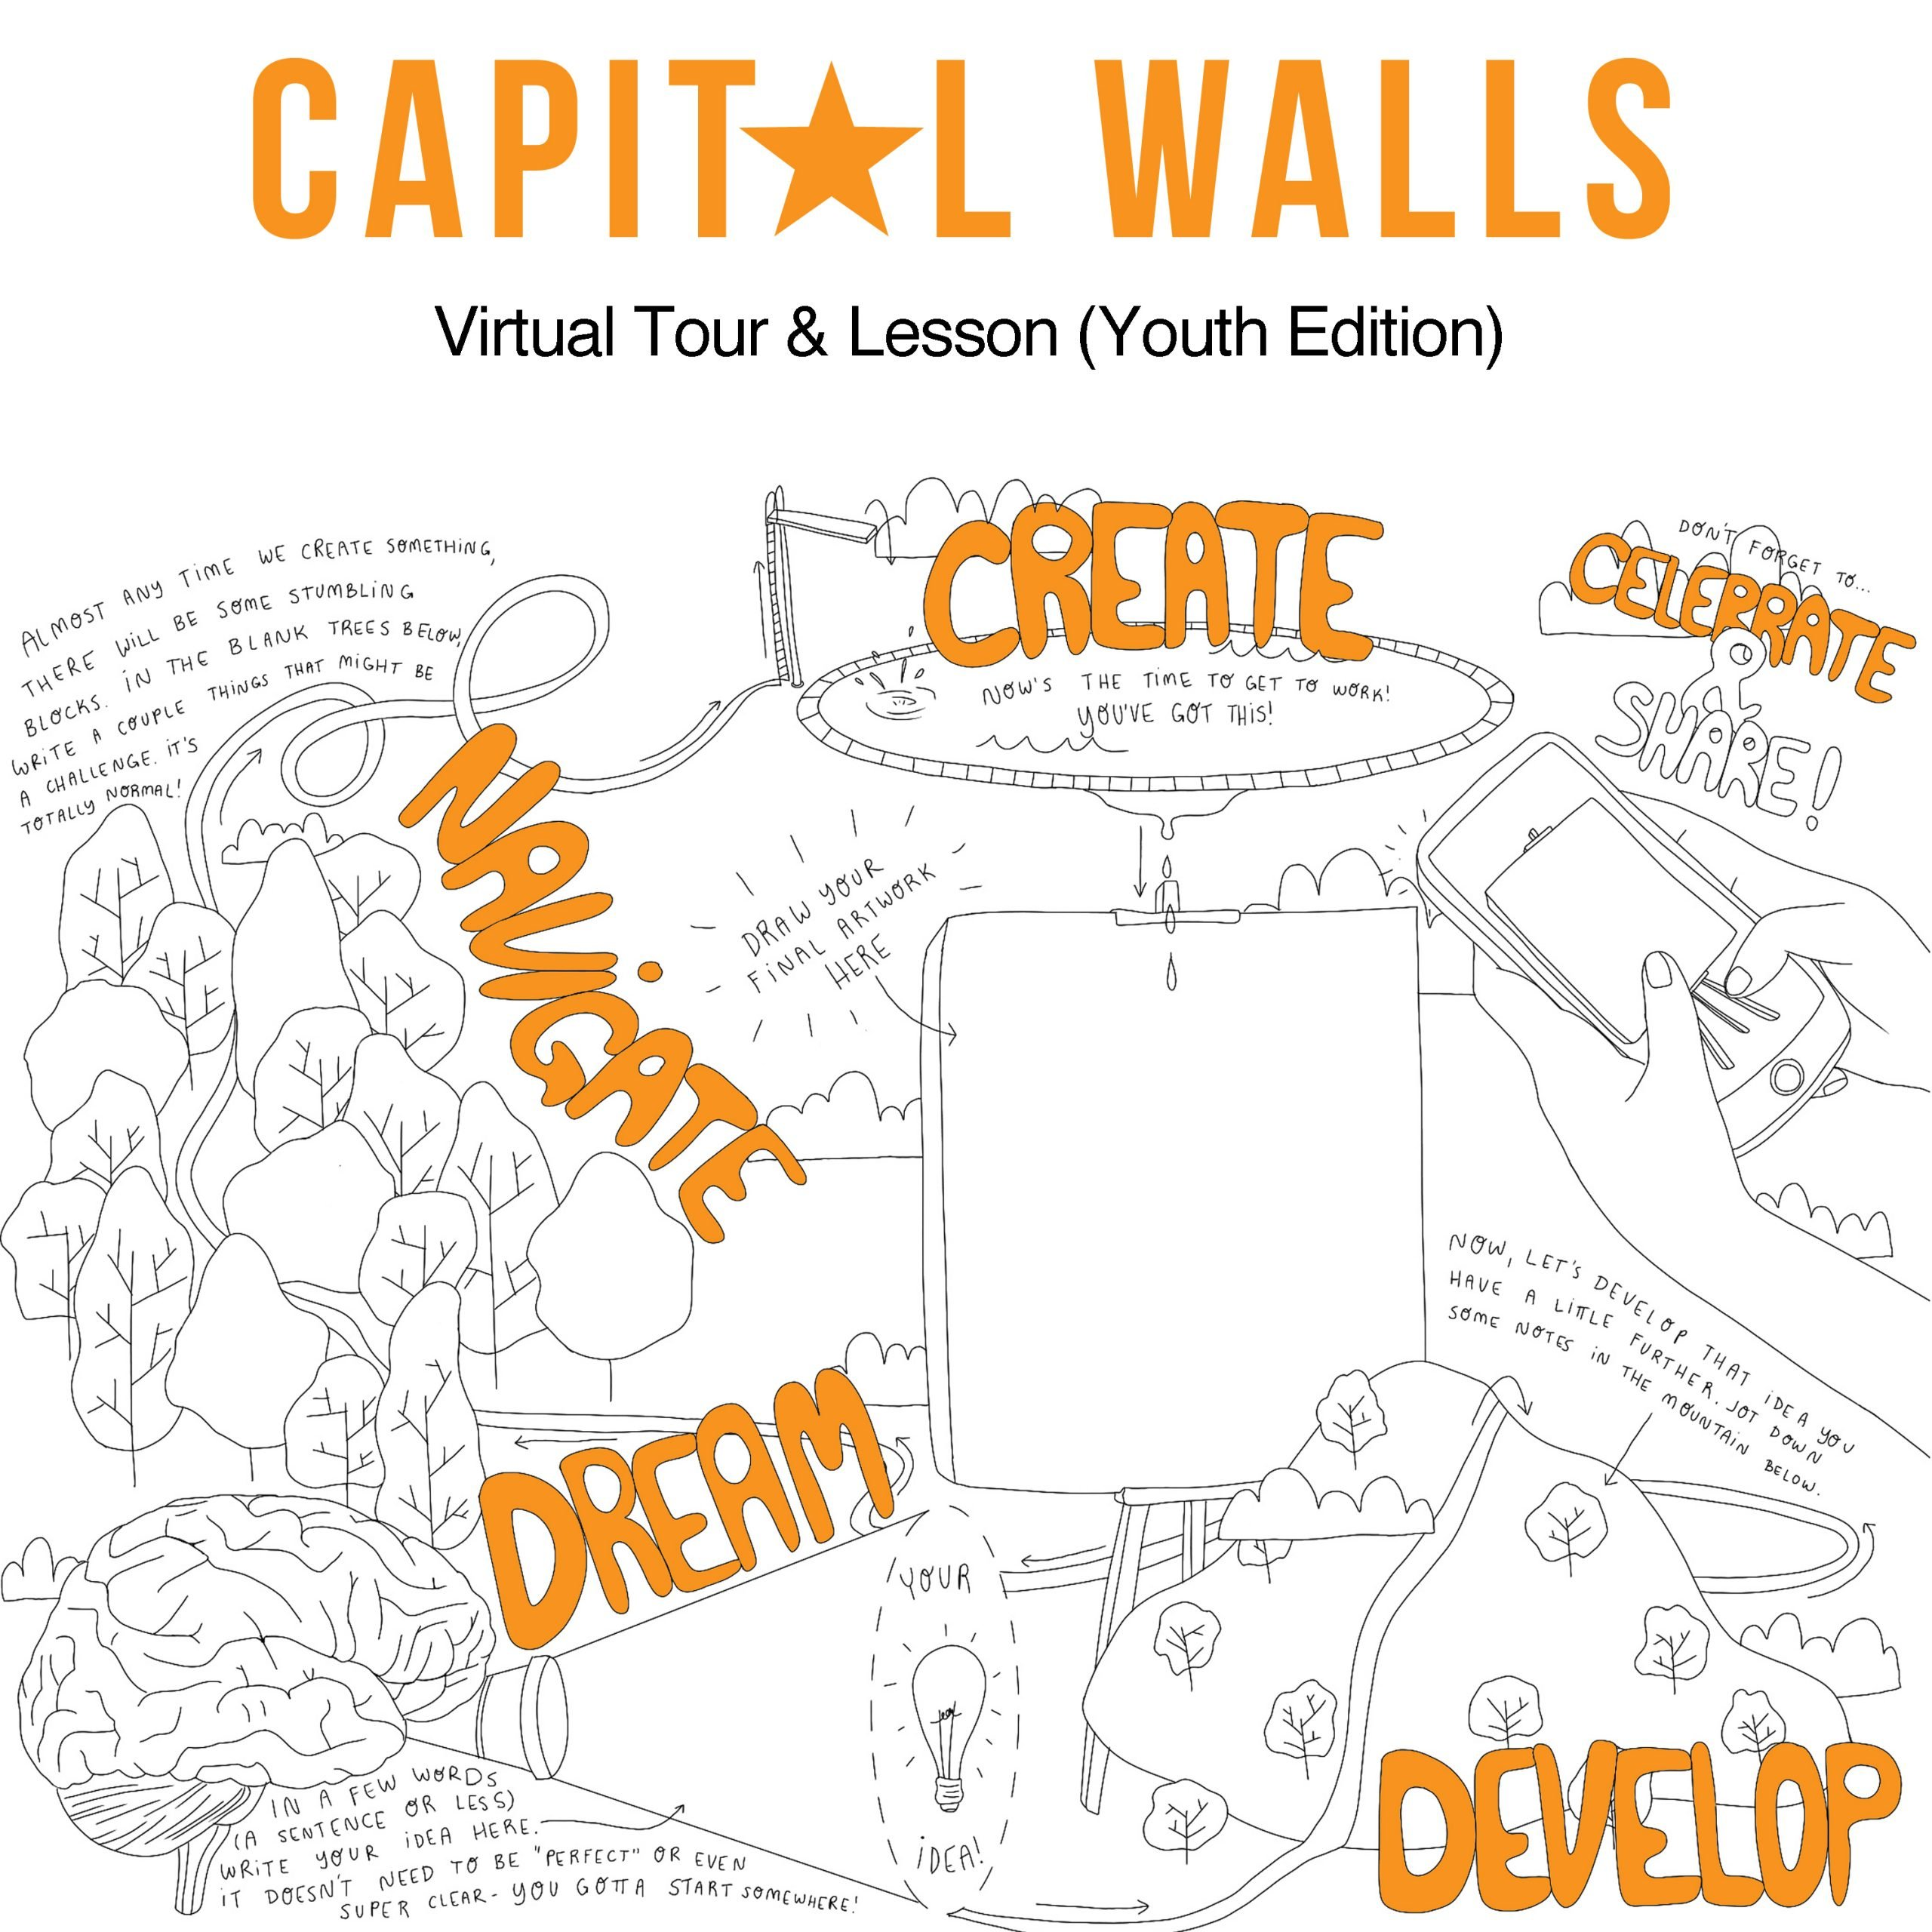 Capital Walls Virtual Tour & Lesson (Youth Edition!) Coming June 26th!